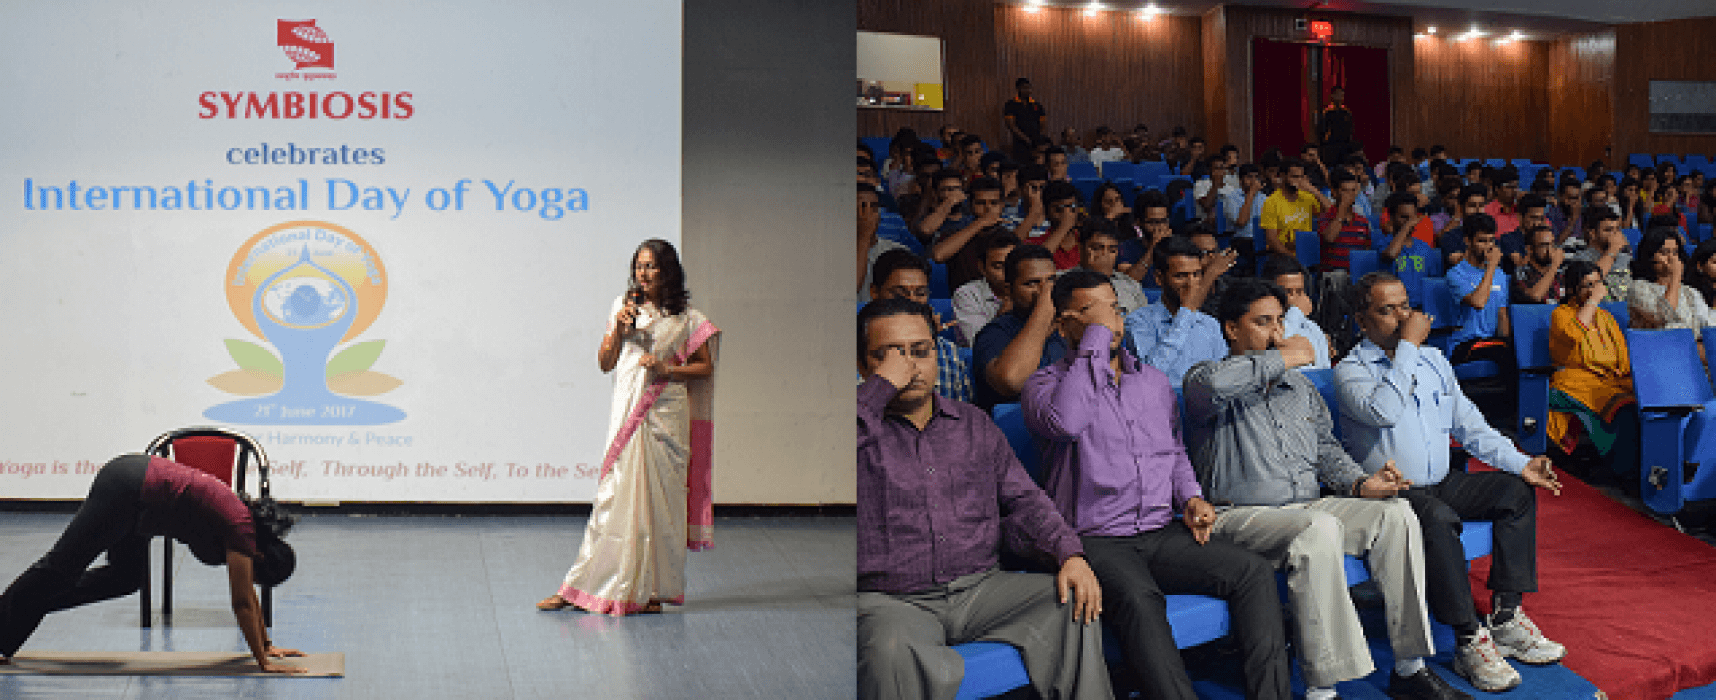 International Yoga Day Celebration at Symbiosis